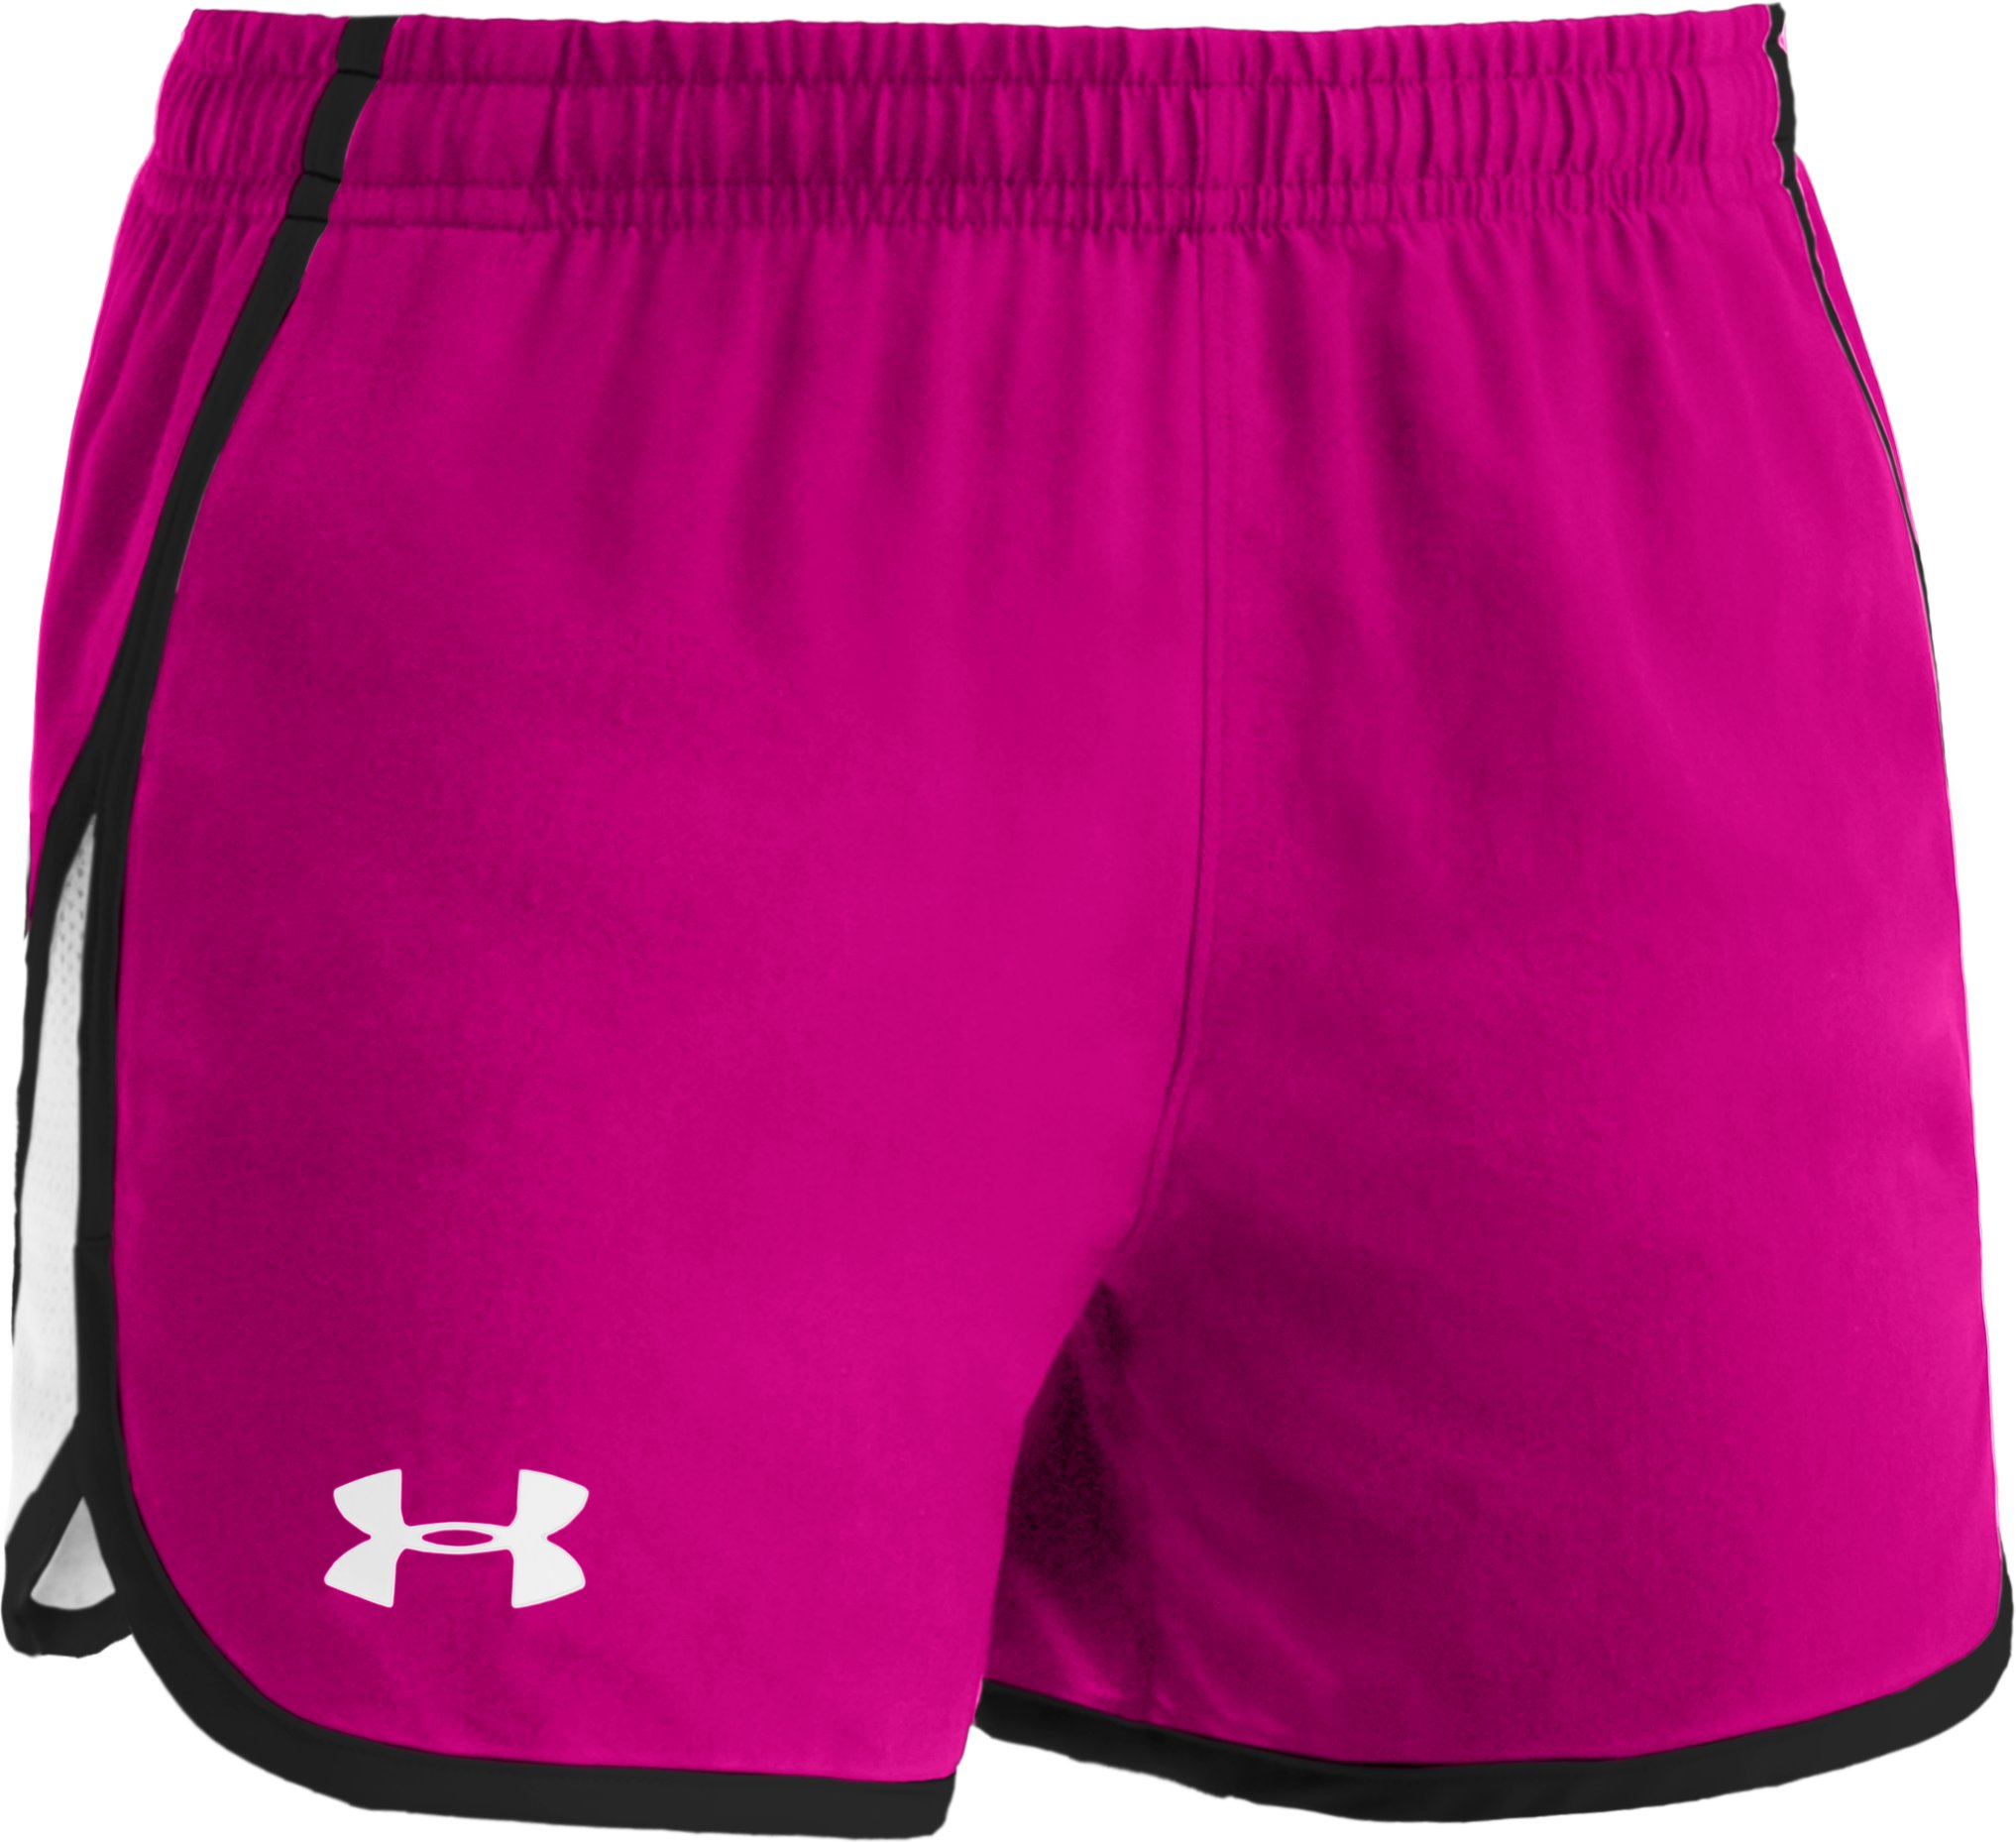 "Girls' UA Escape 3"" Shorts, Tropic Pink, undefined"